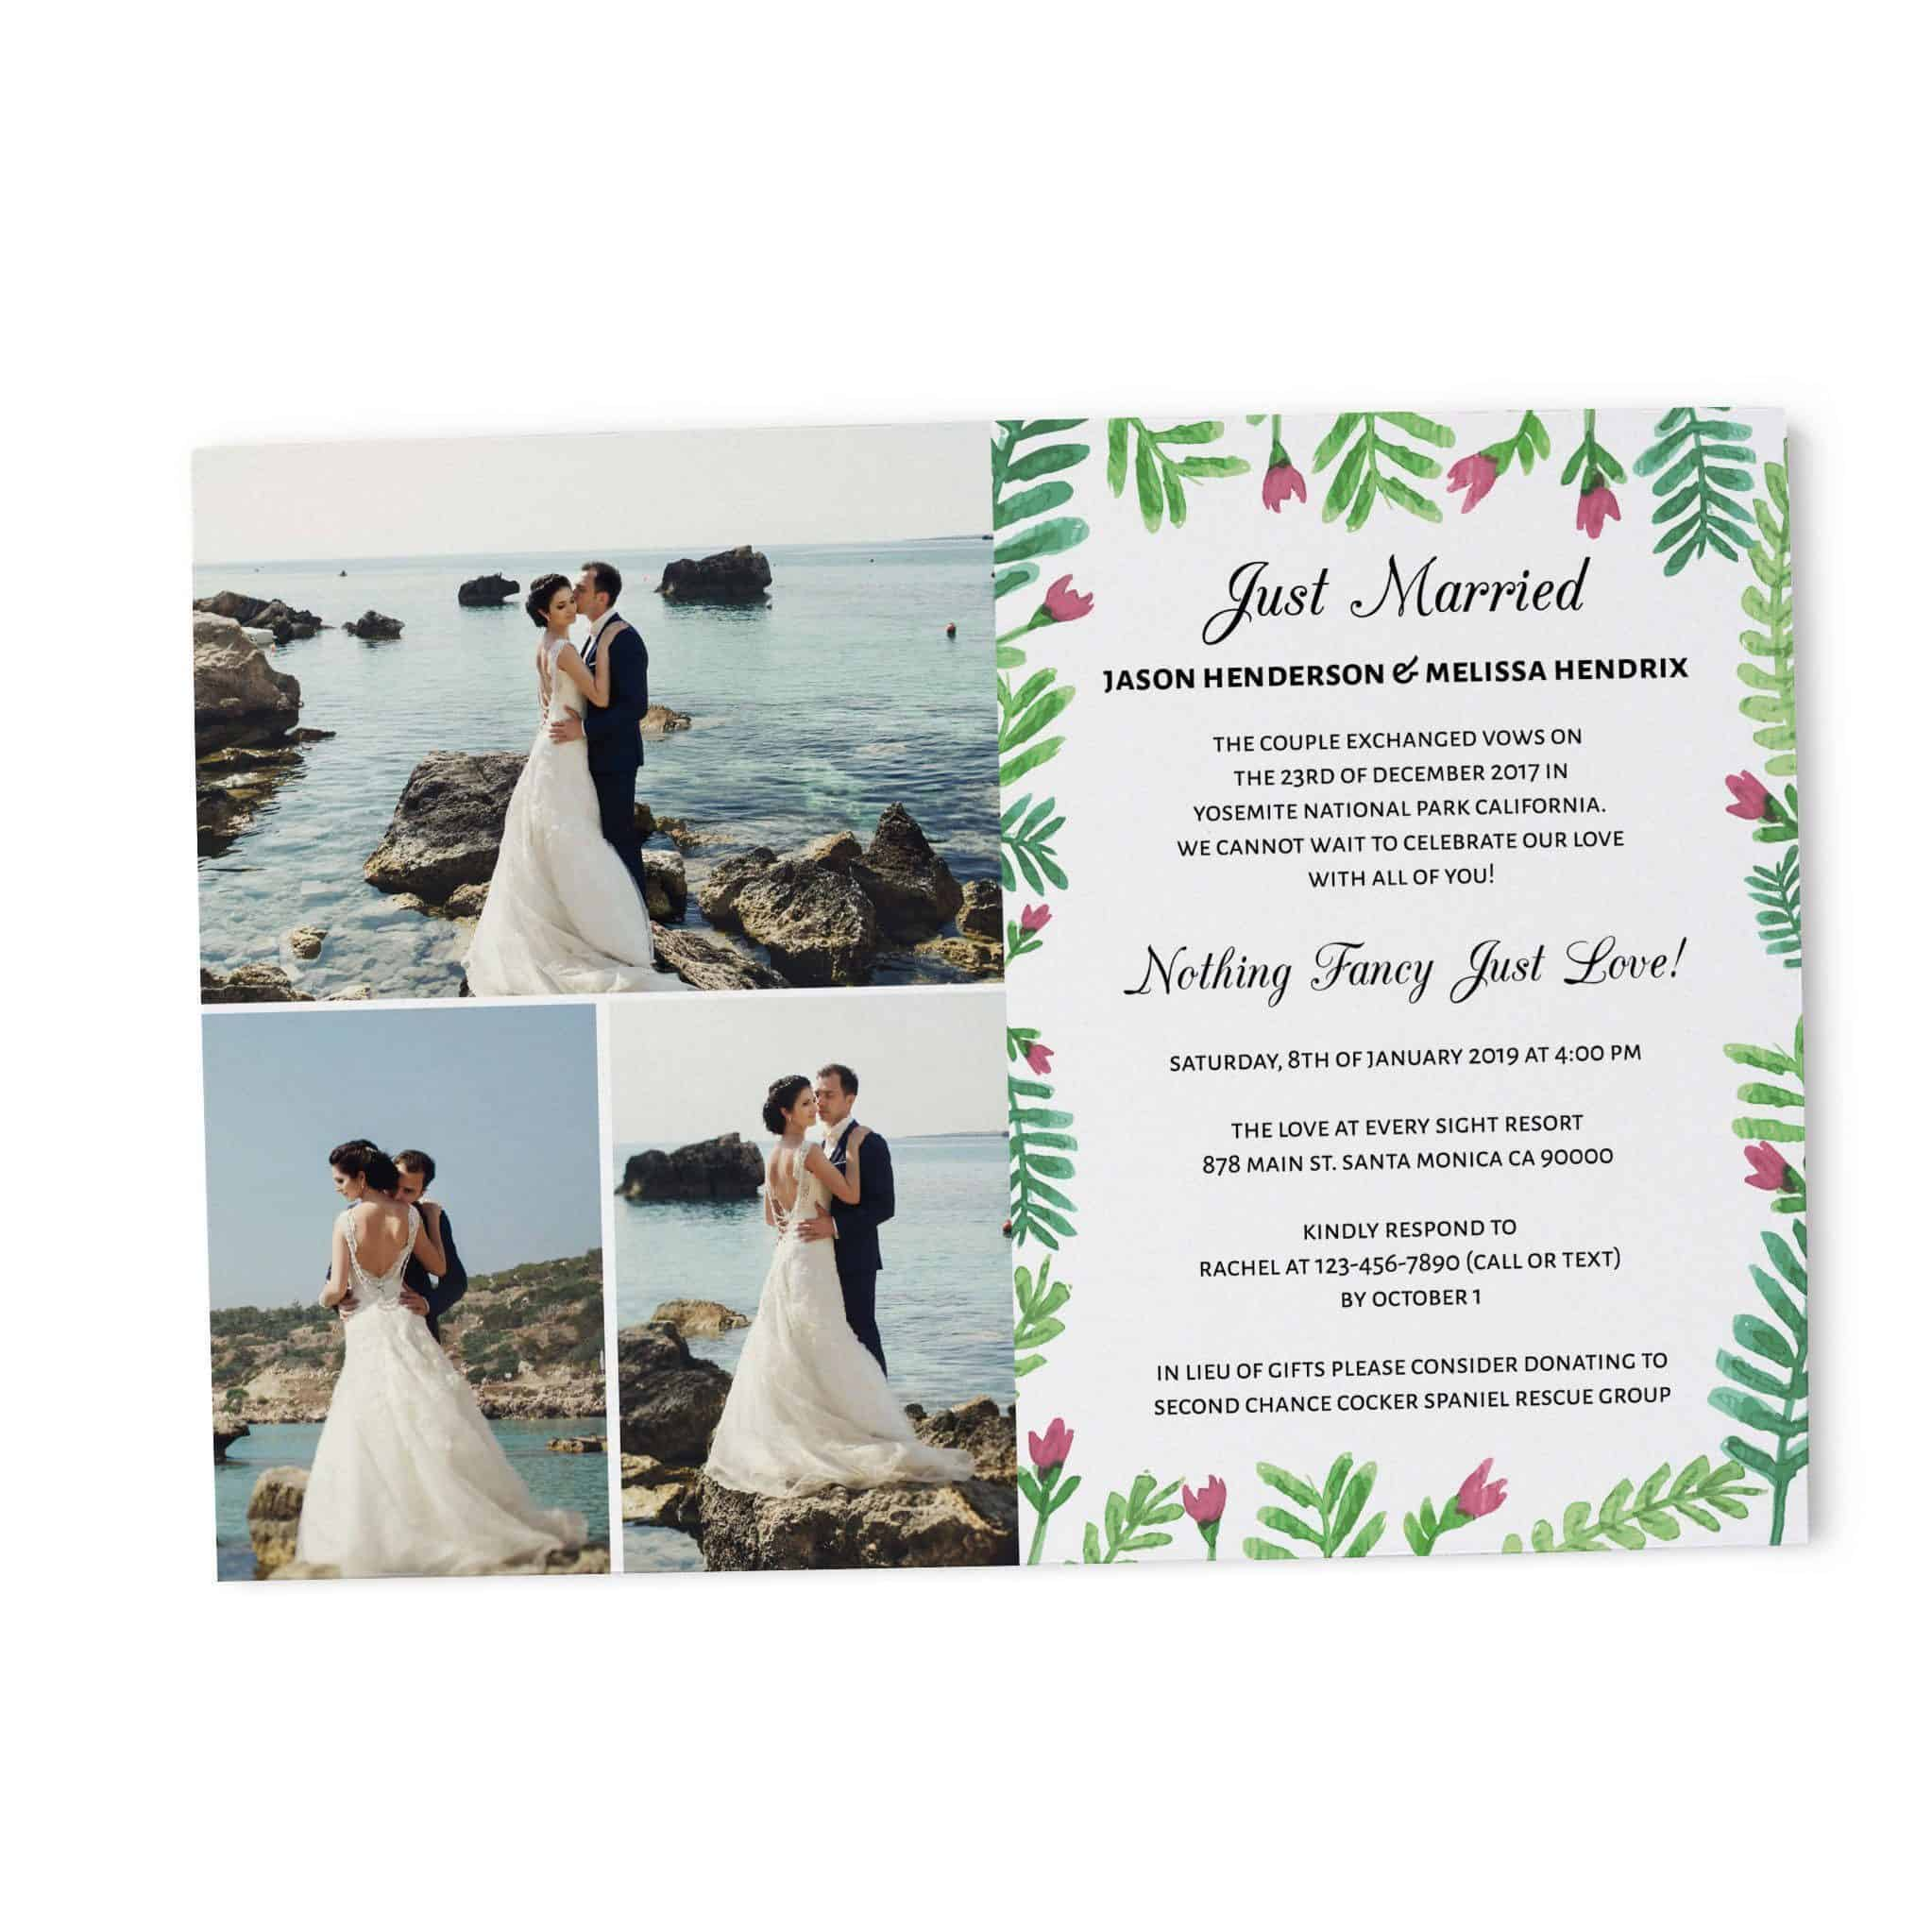 Just Married We Eloped Party Invites Nothing Fancy Just Love